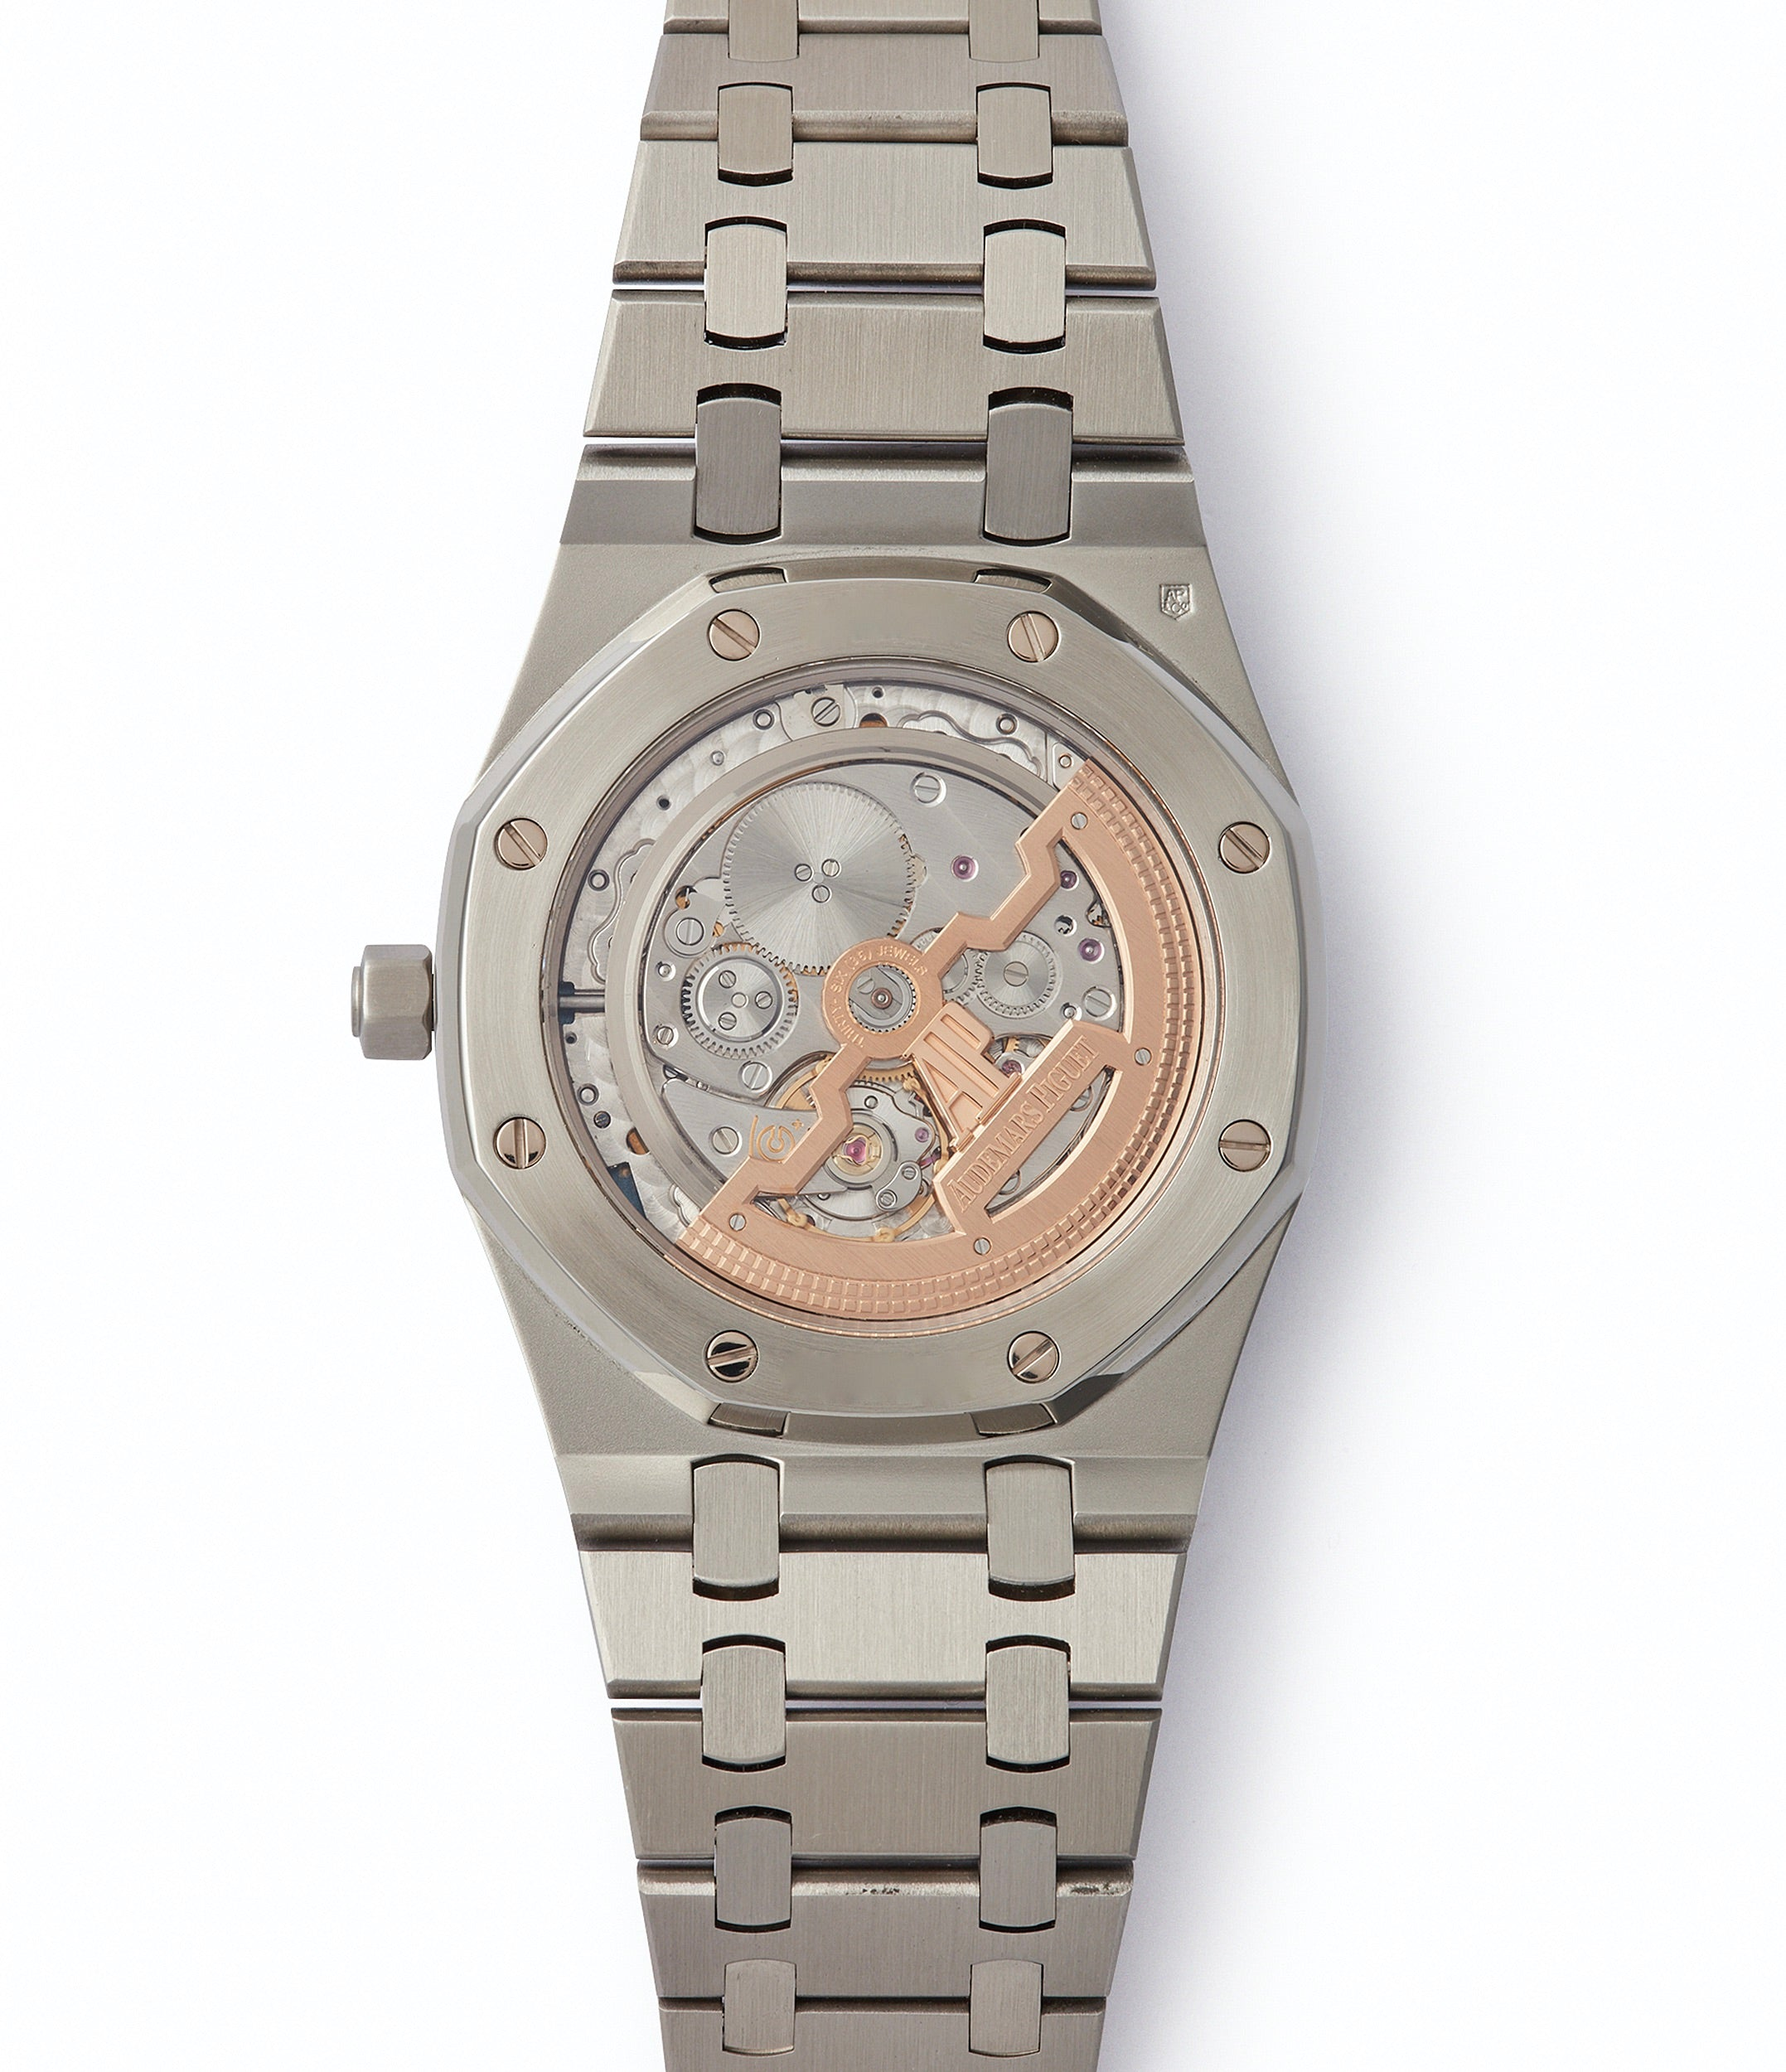 Royal Oak 15202 MK1 | Steel